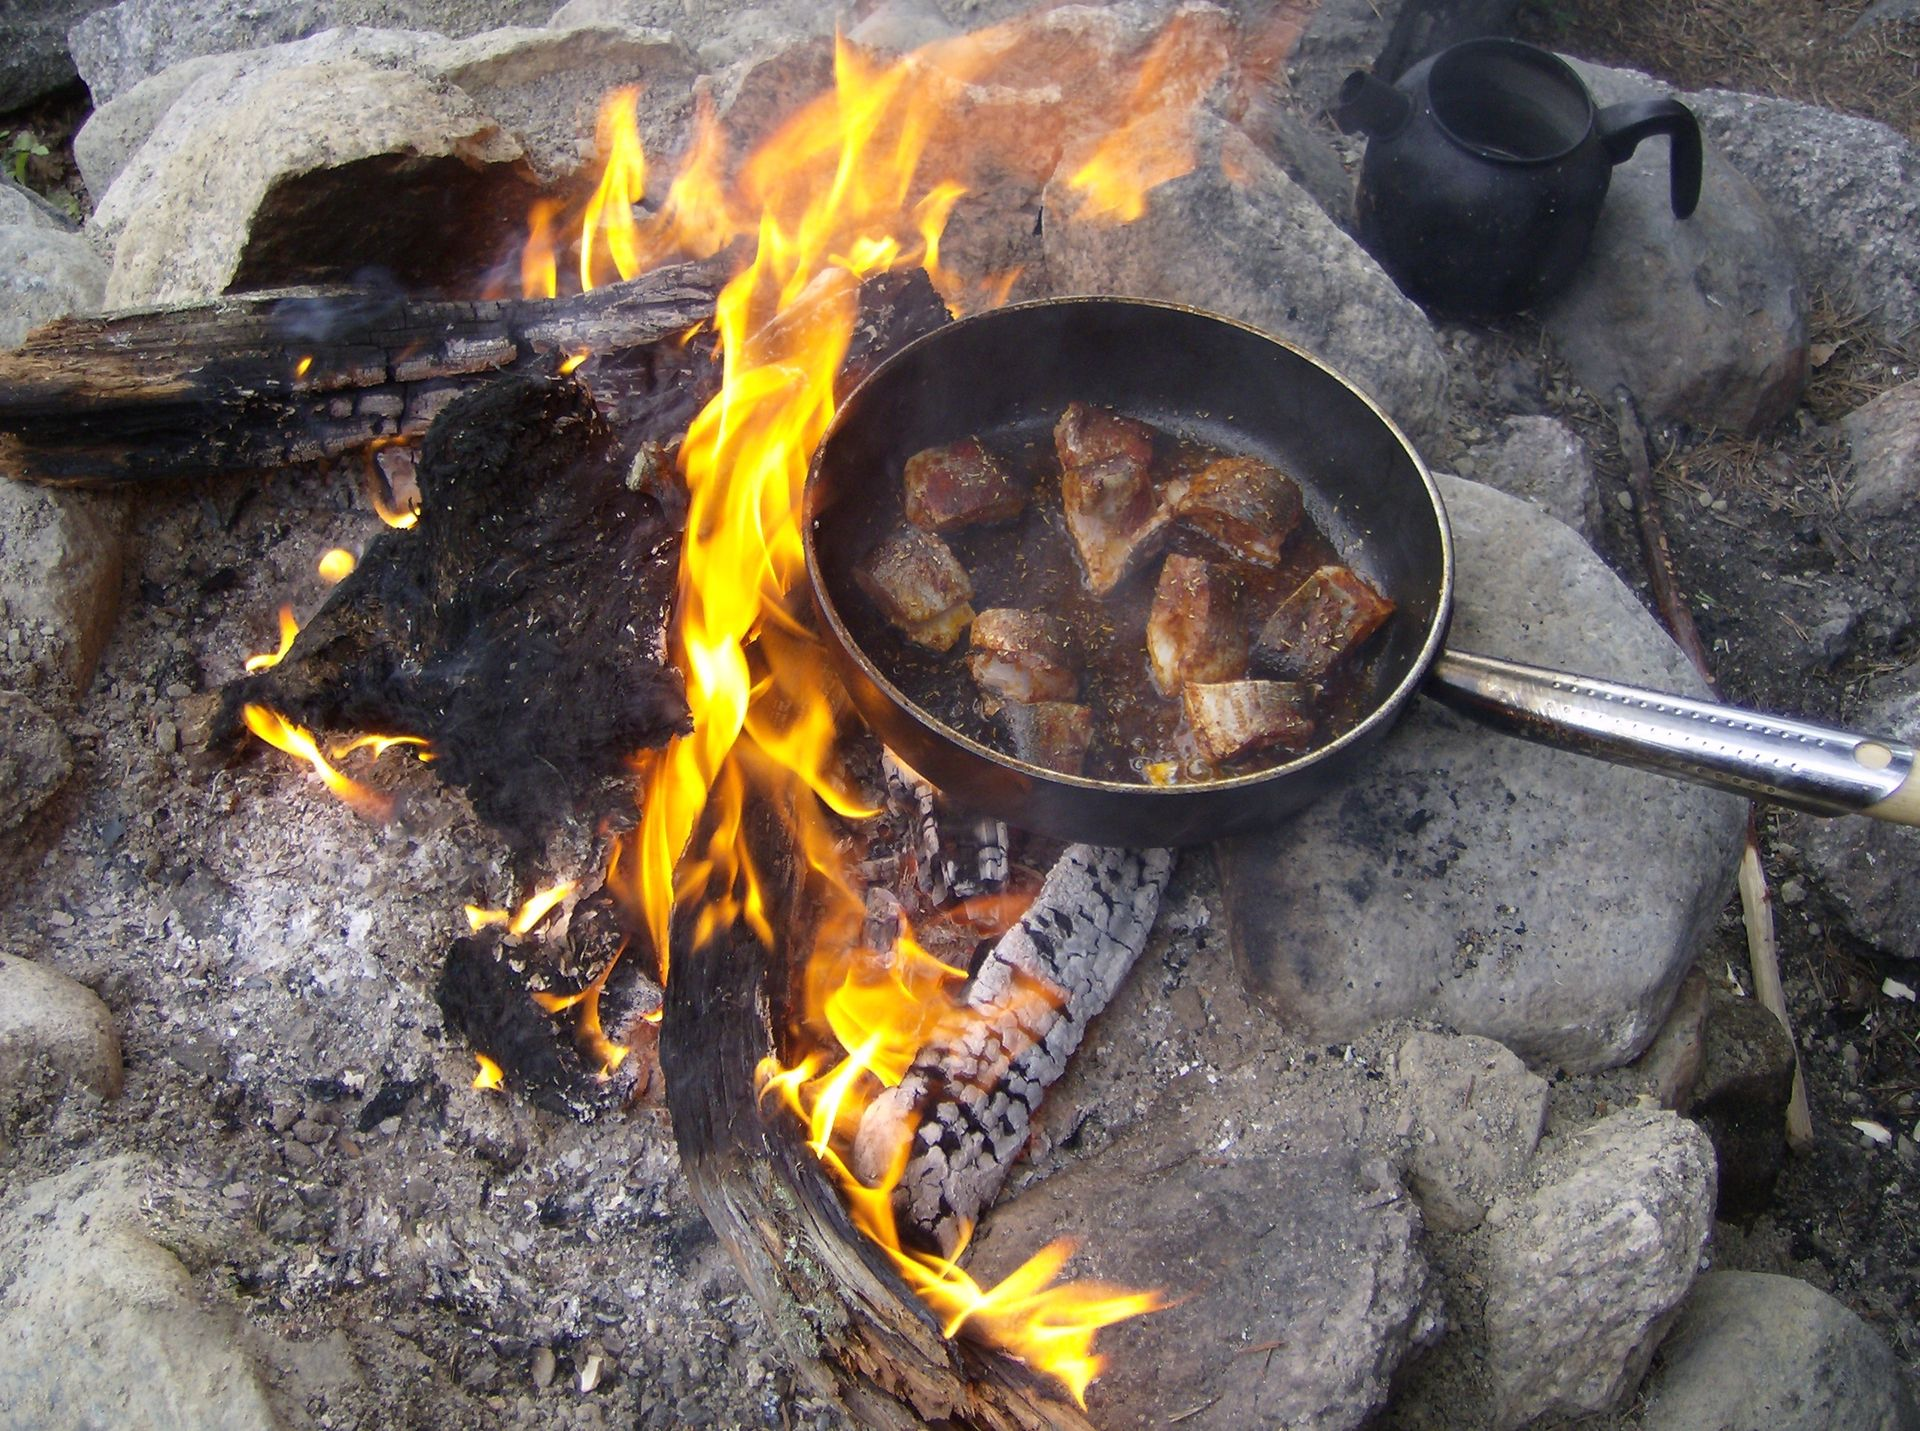 Lunch during bushcraft course